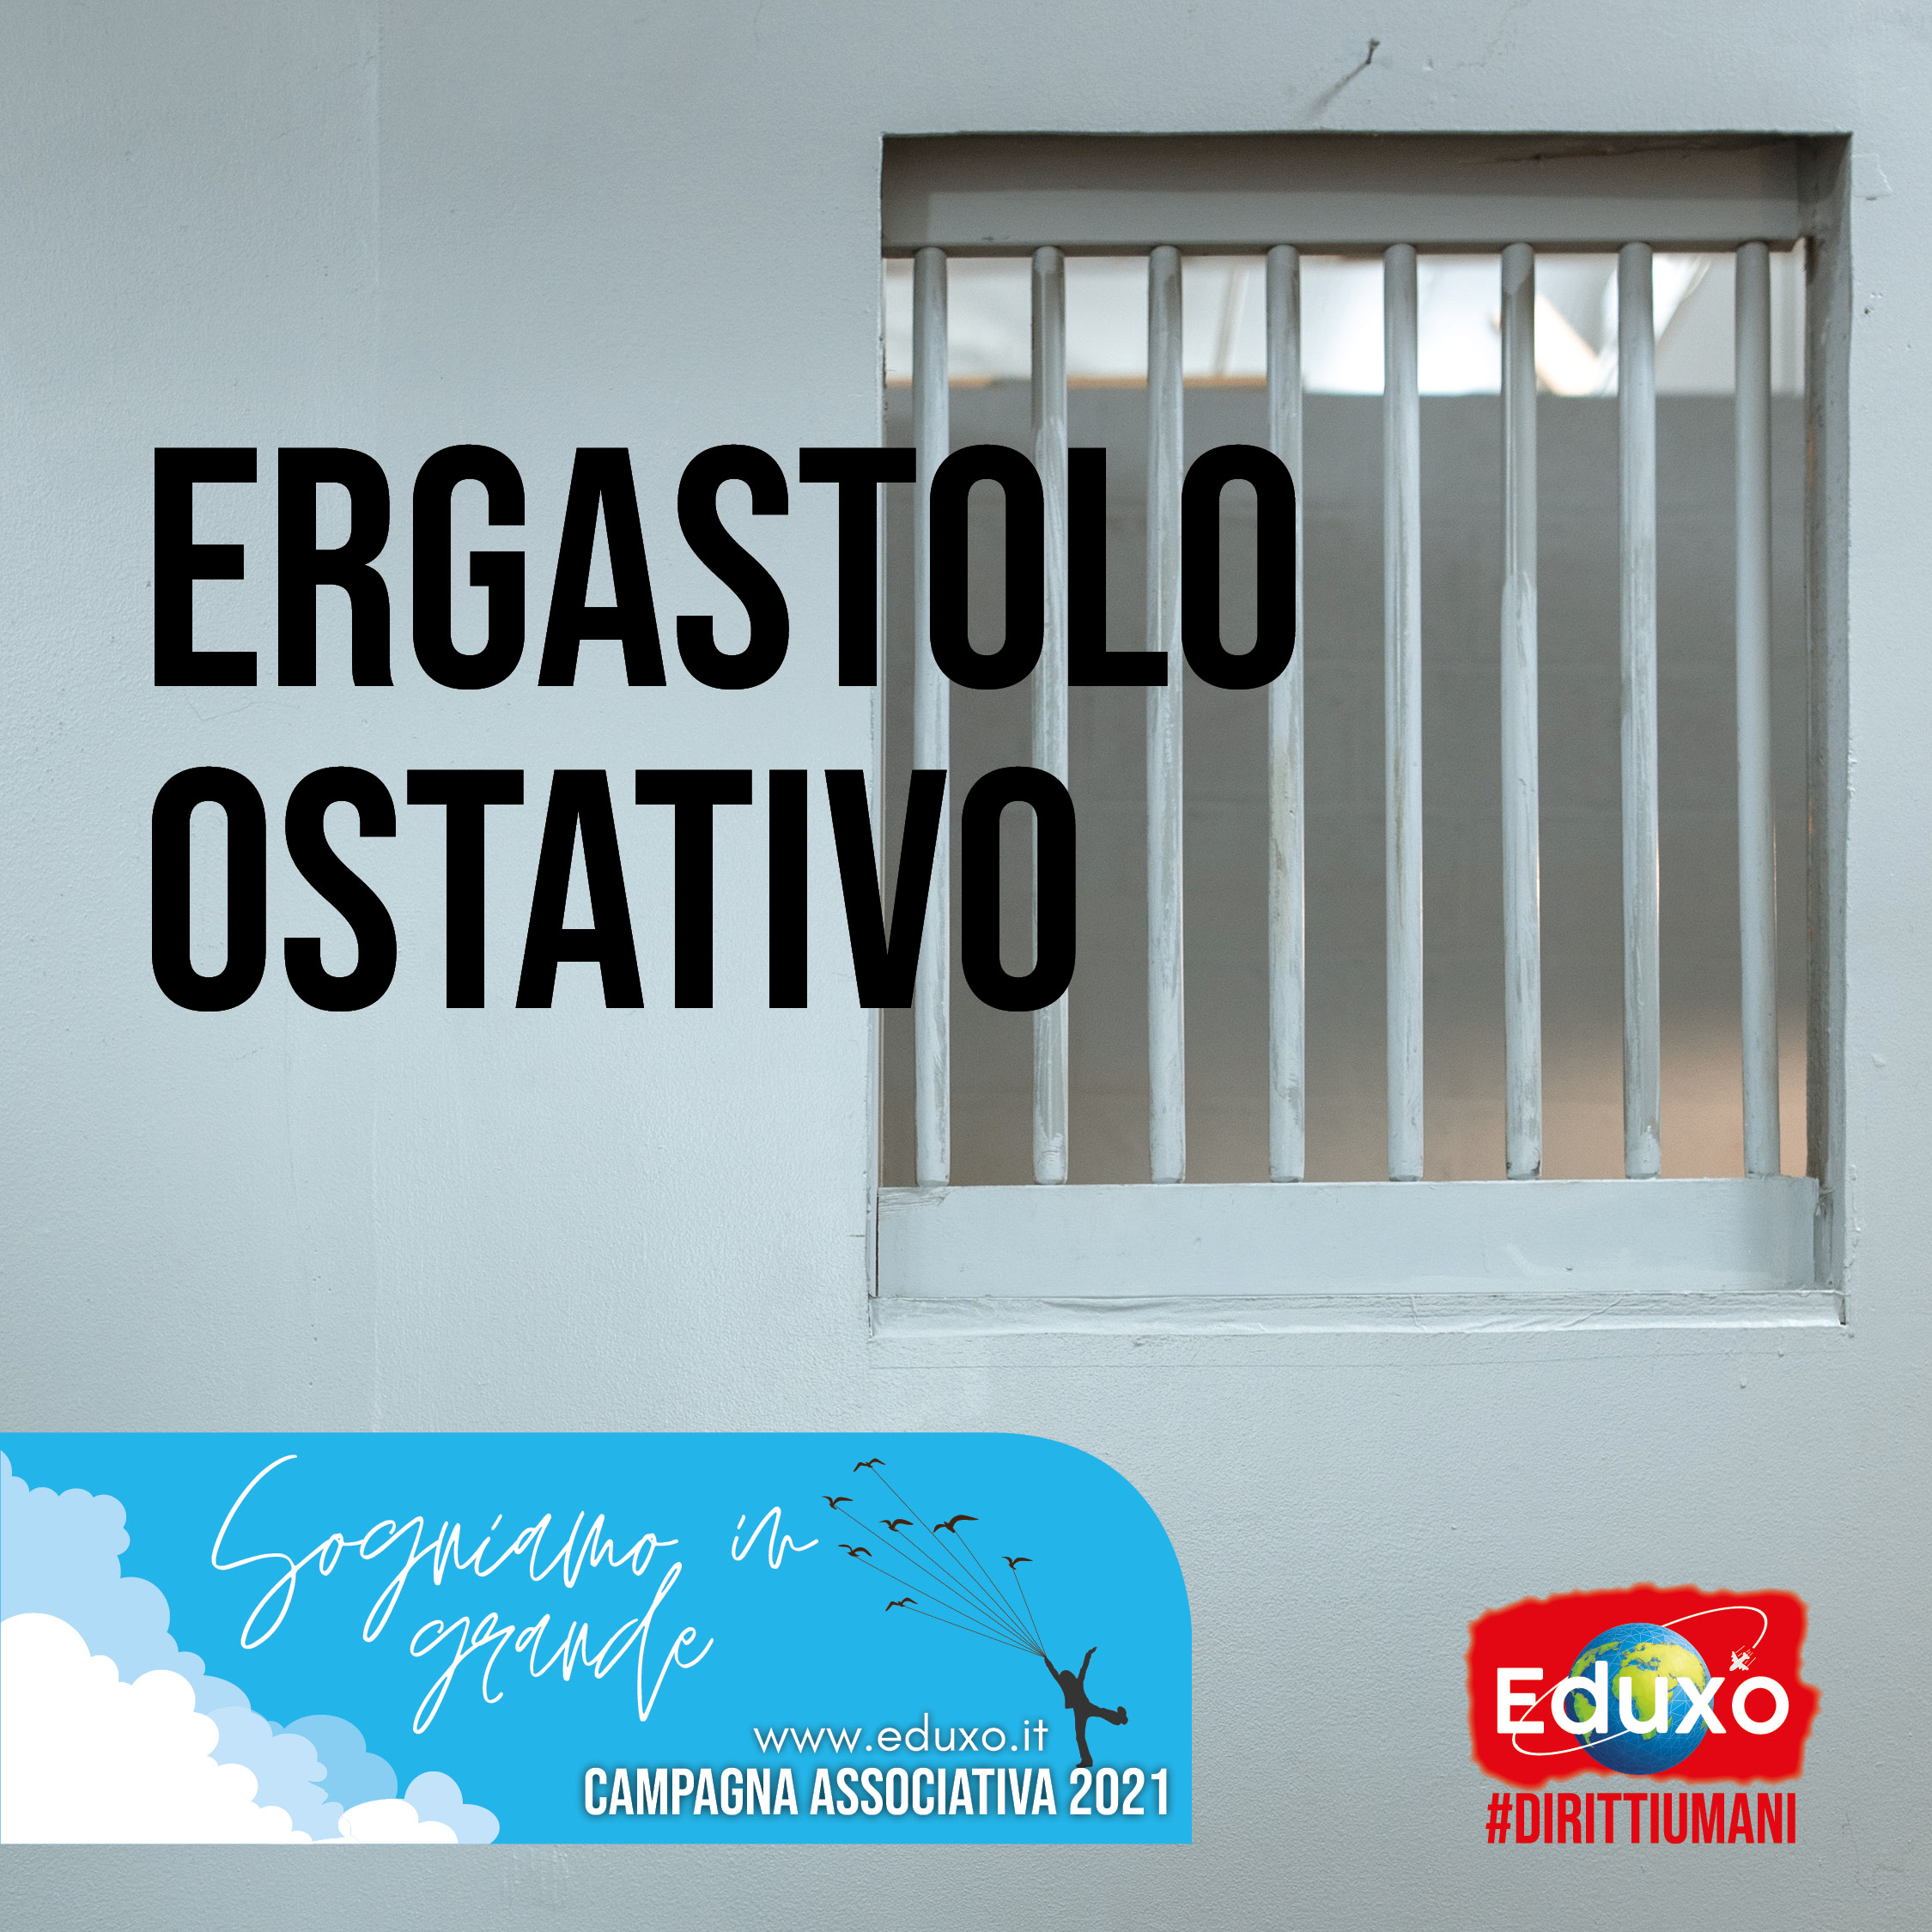 You are currently viewing Ergastolo ostativo